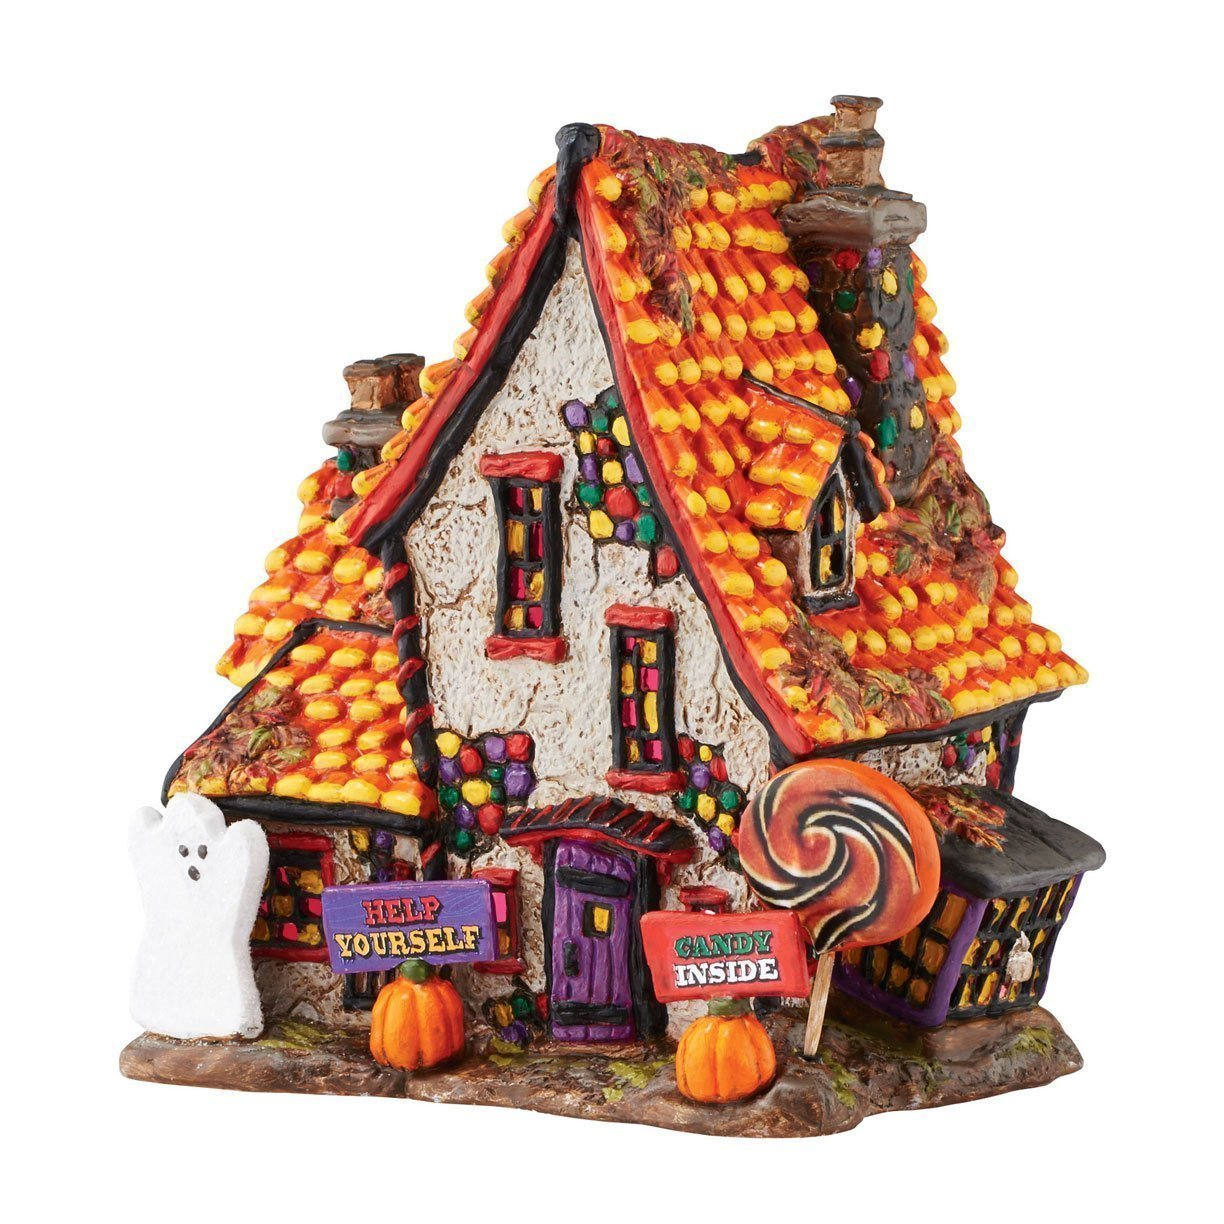 Department 56 Village Halloween Sweet Trappings Cottage Lit House